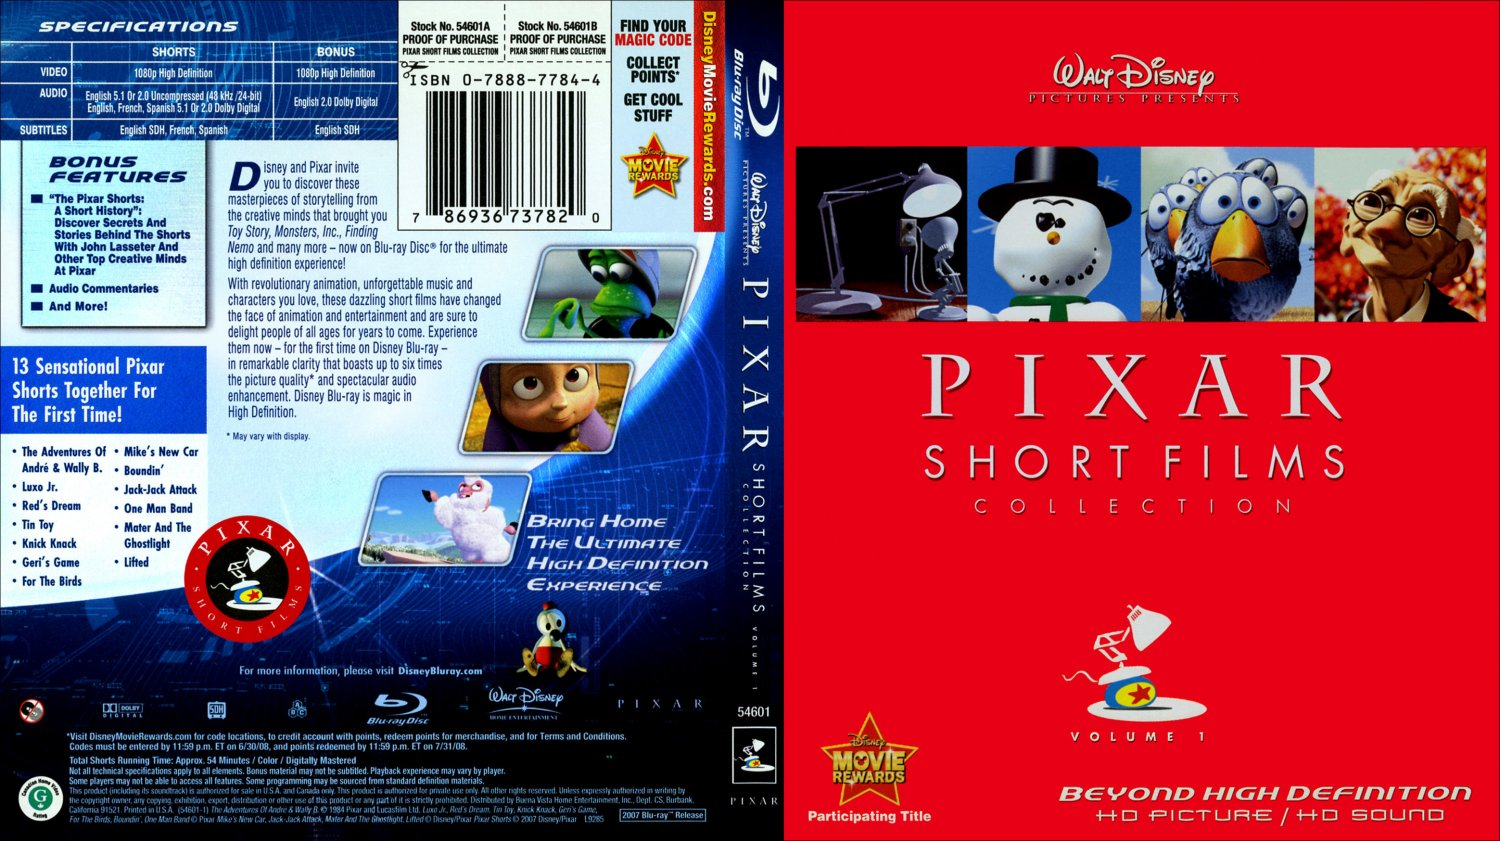 opening to pixar short films collection volume 1 dvd / bbc iplayer